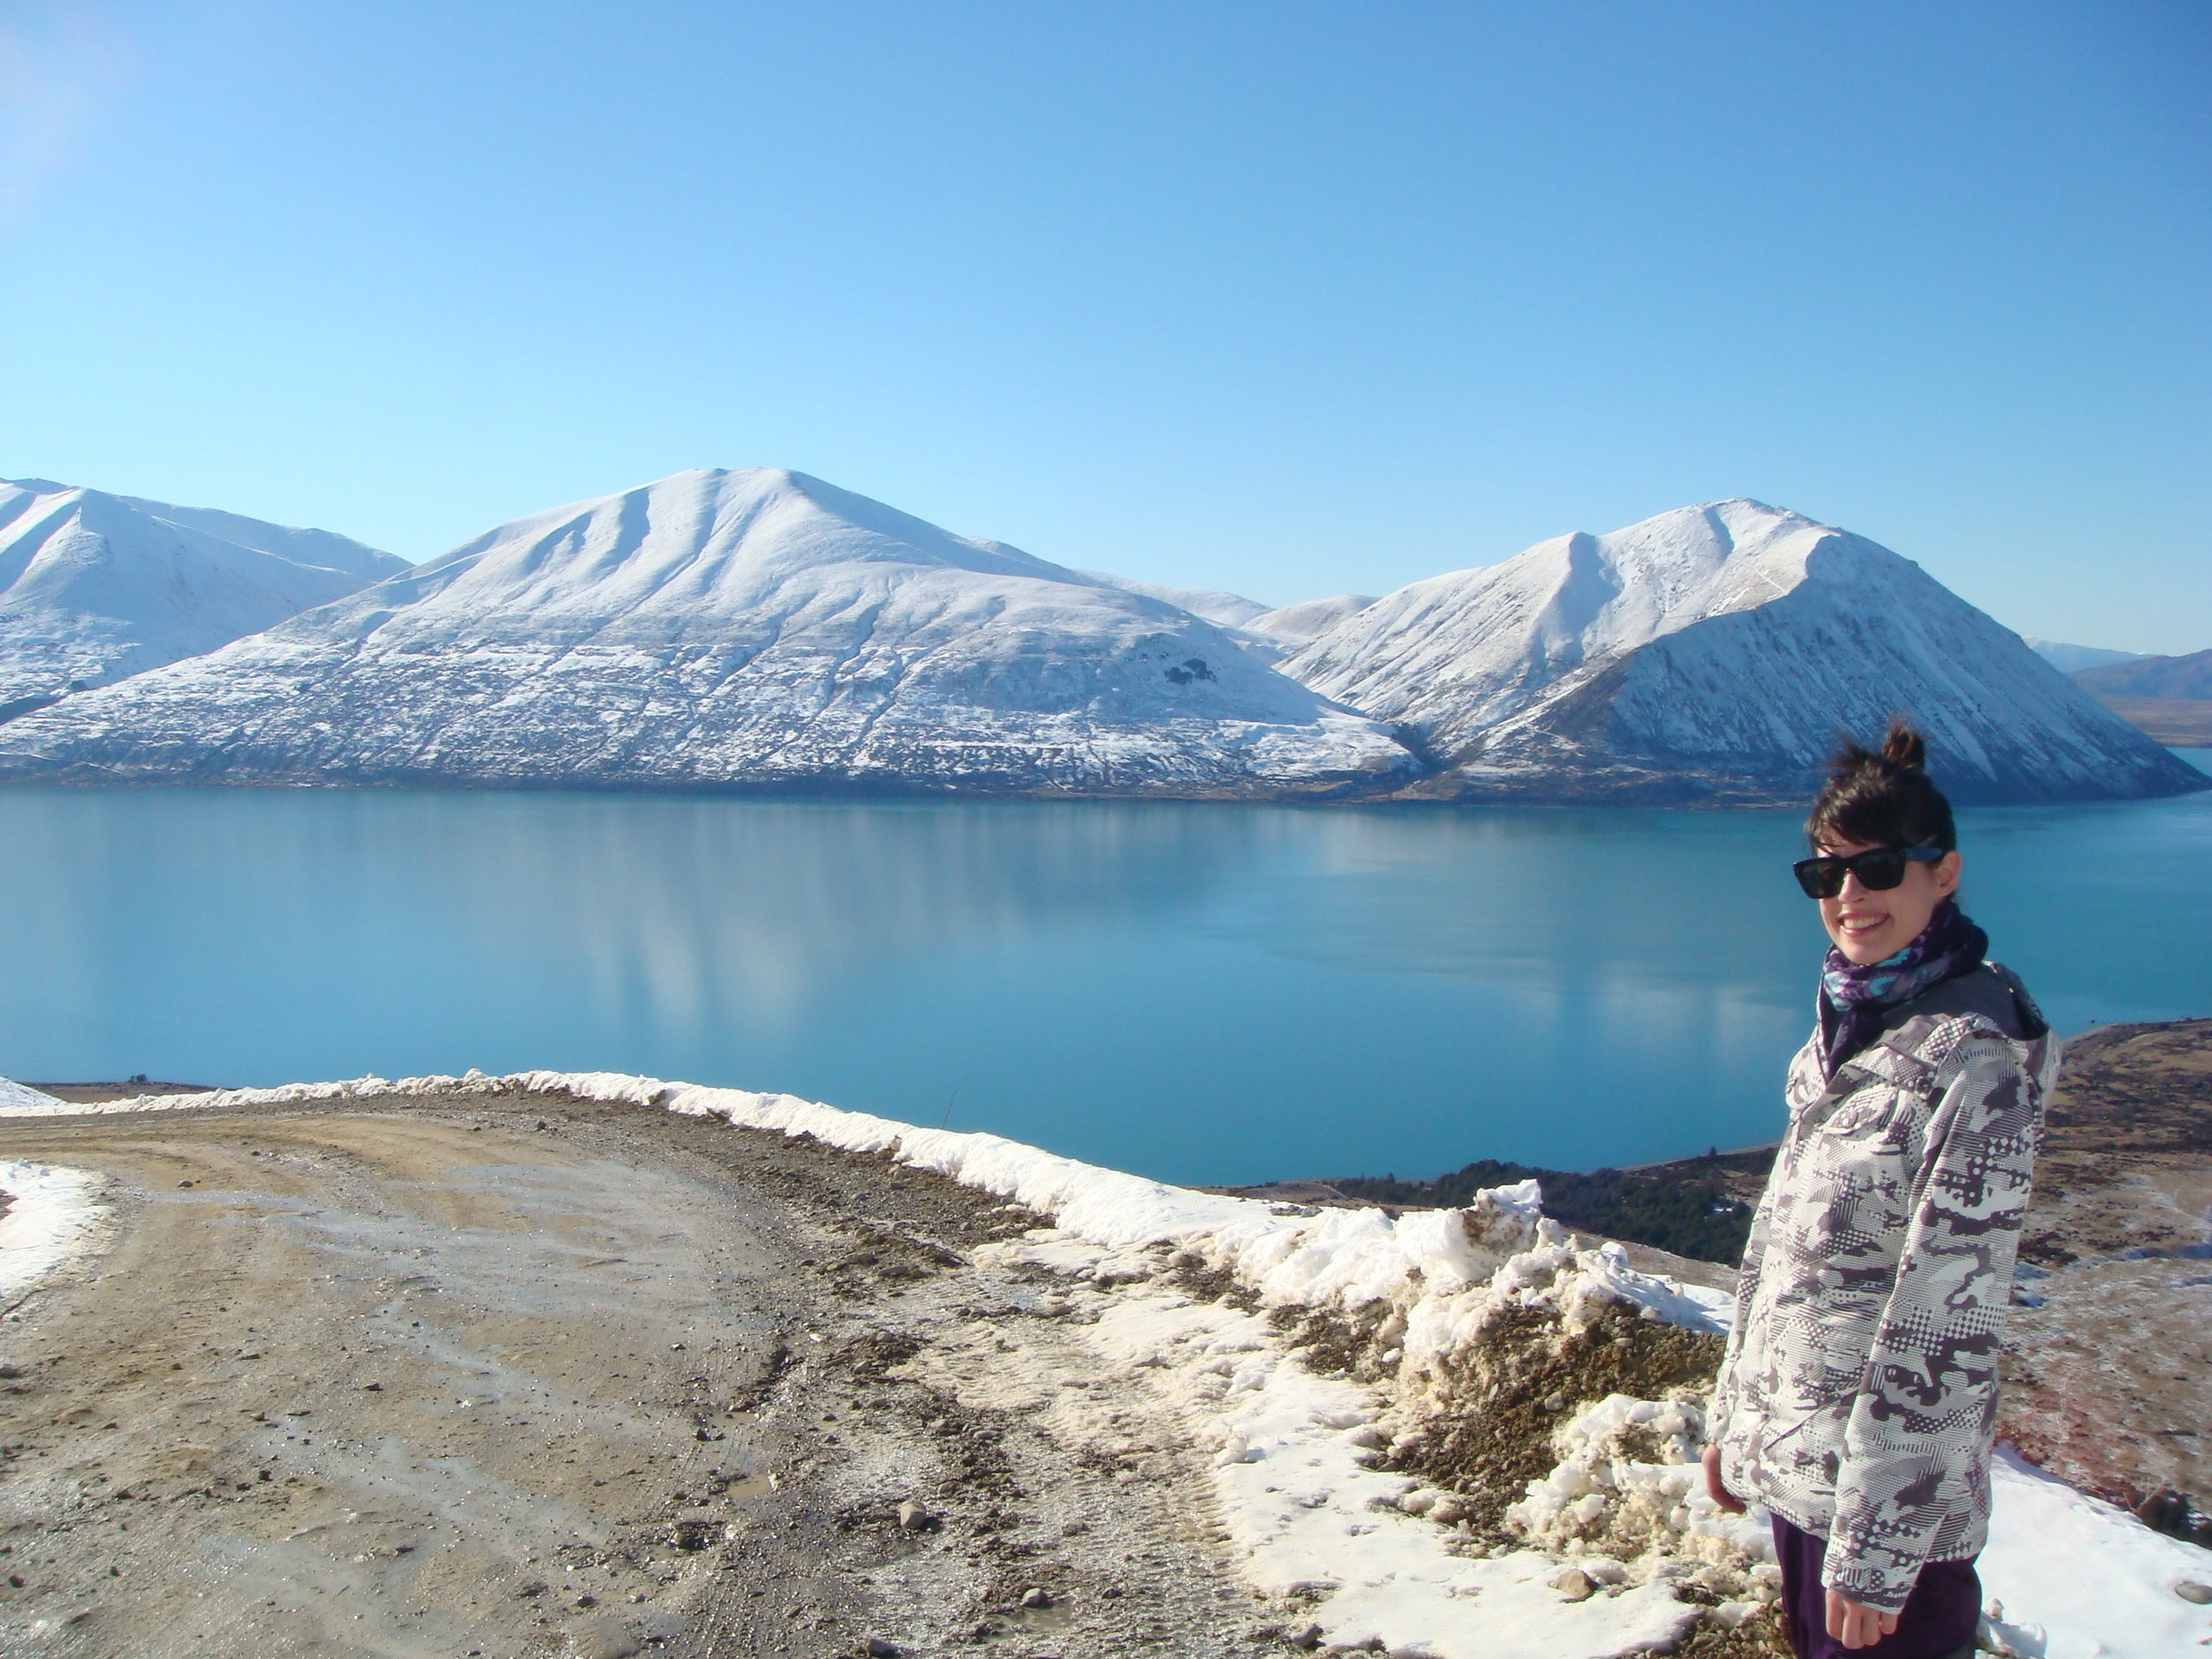 Lake Ohau, Mackenzie Basin, South Island, NZ